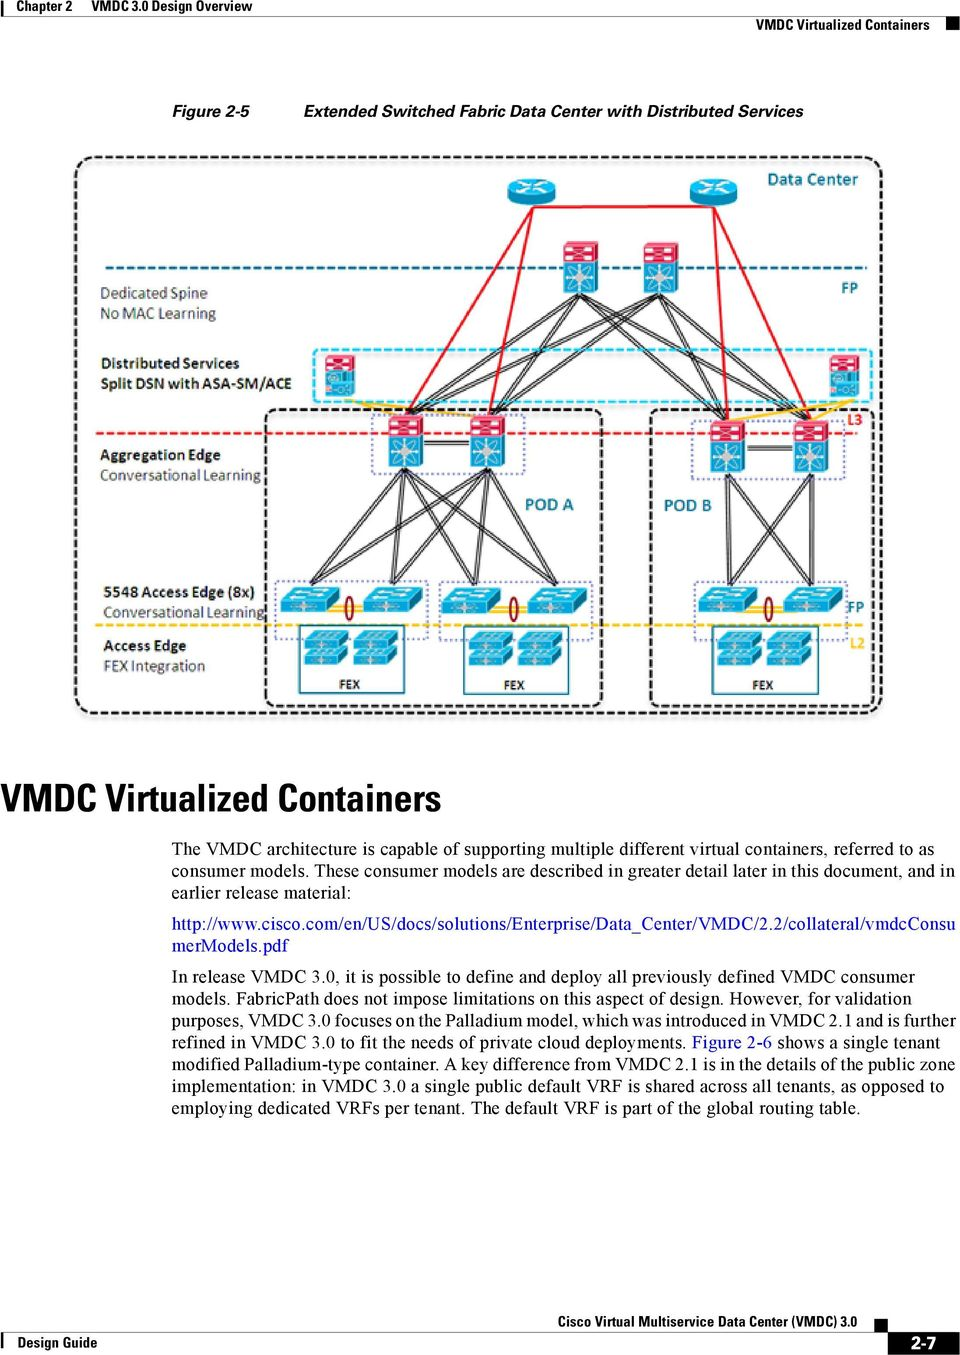 com/en/us/docs/solutions/enterprise/data_center/vmdc/2.2/collateral/vmdcconsu mermodels.pdf In release VMDC 3.0, it is possible to define and deploy all previously defined VMDC consumer models.